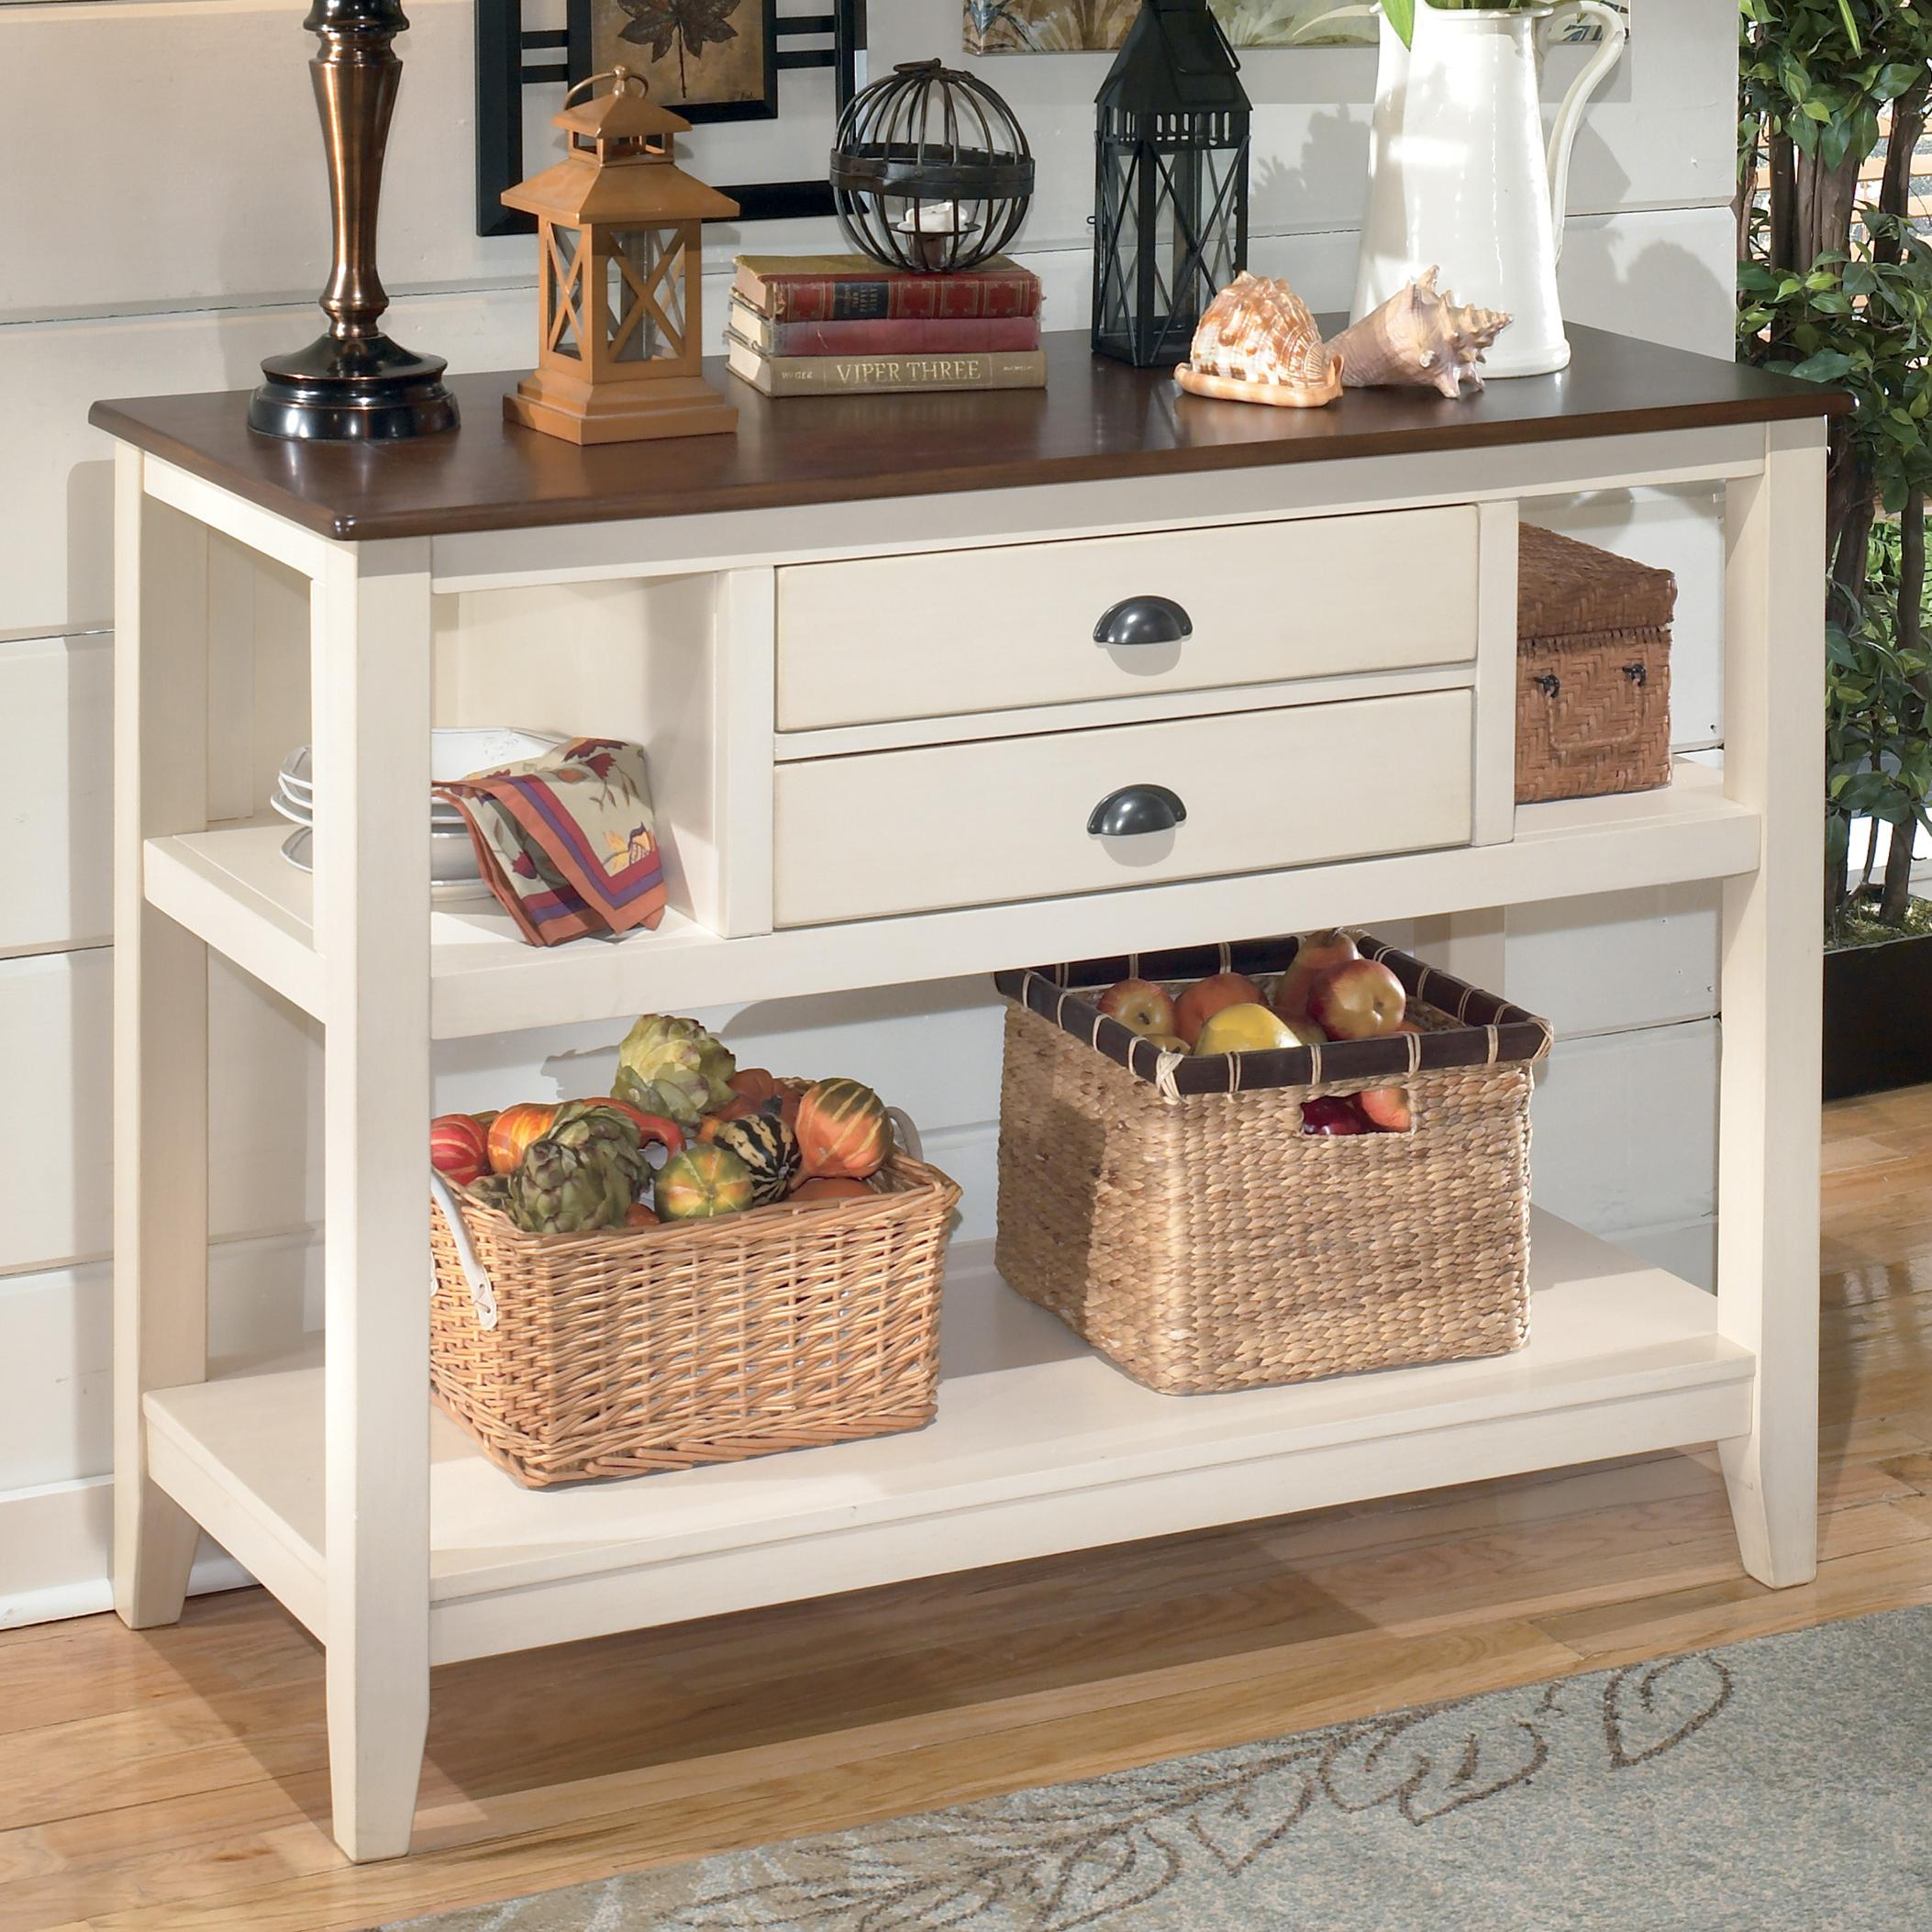 Whitesburg Dining Room Server by Signature Design by Ashley at Houston's Yuma Furniture